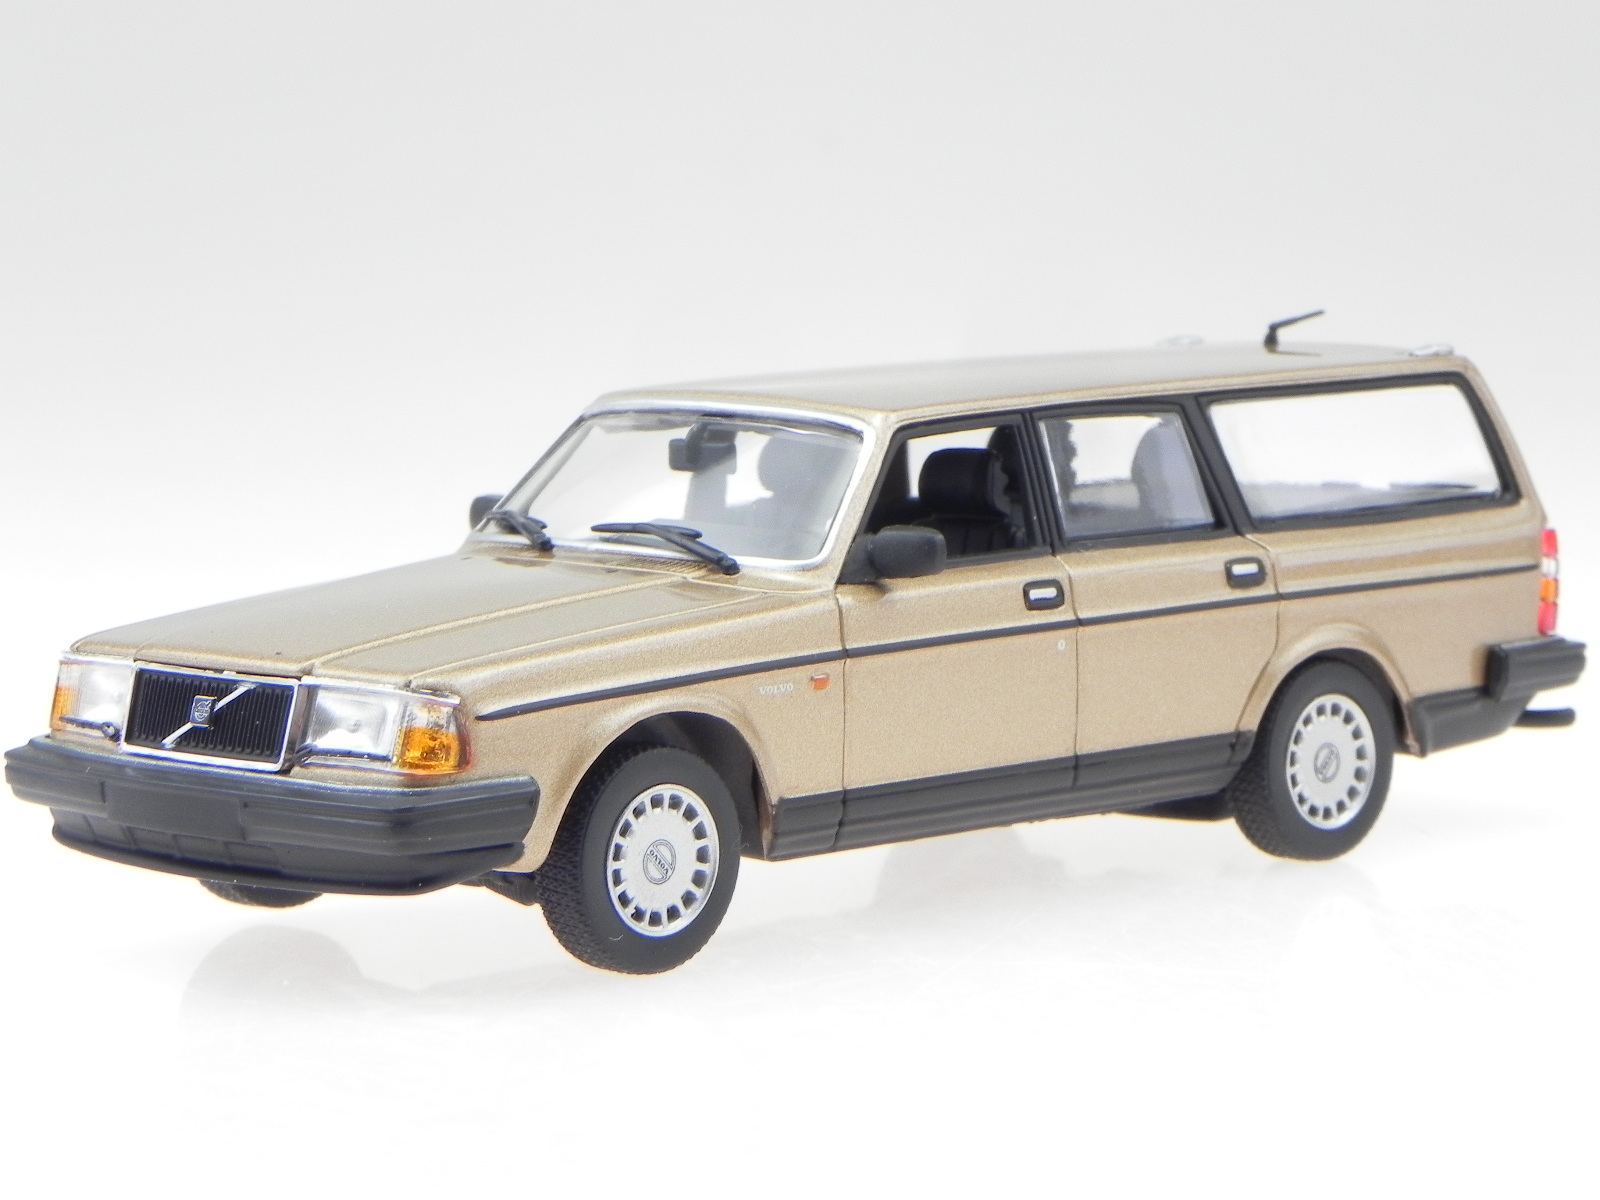 Details about Volvo 240 GL Break 1986 gold met  diecast modelcar 940171414  Maxichamps 1:43